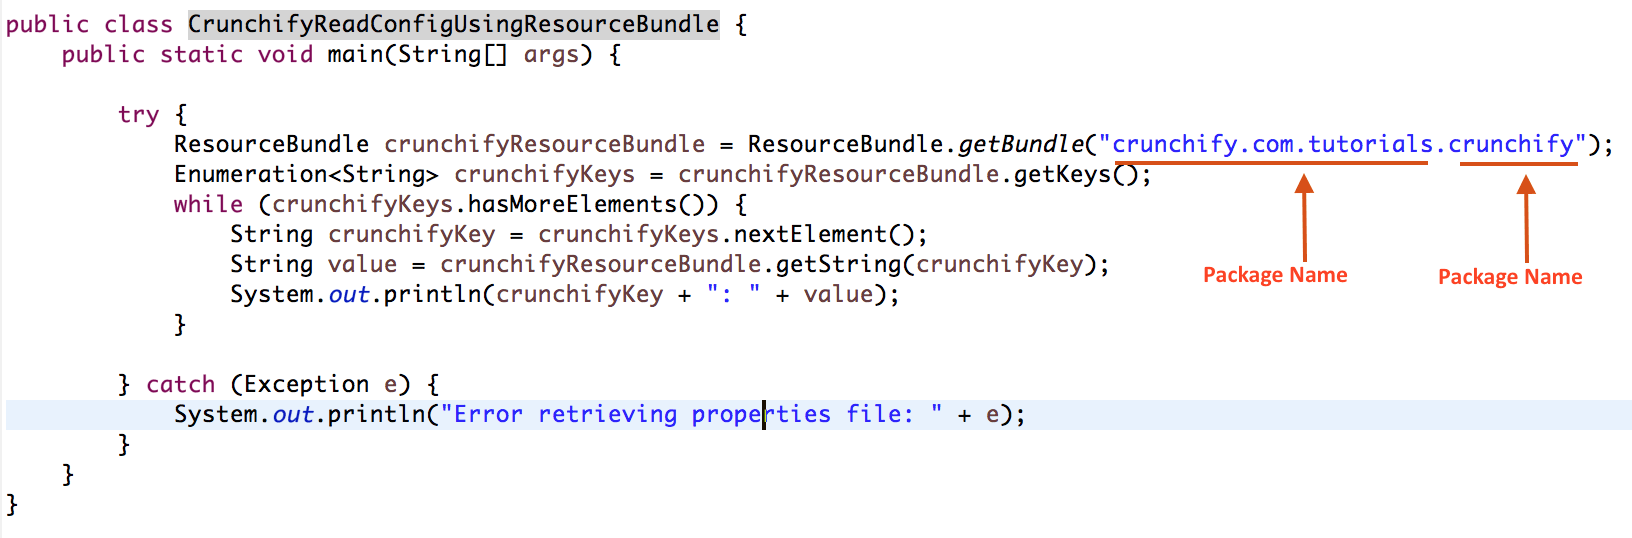 How to Use ResourceBundle getBundle to get Properties Value